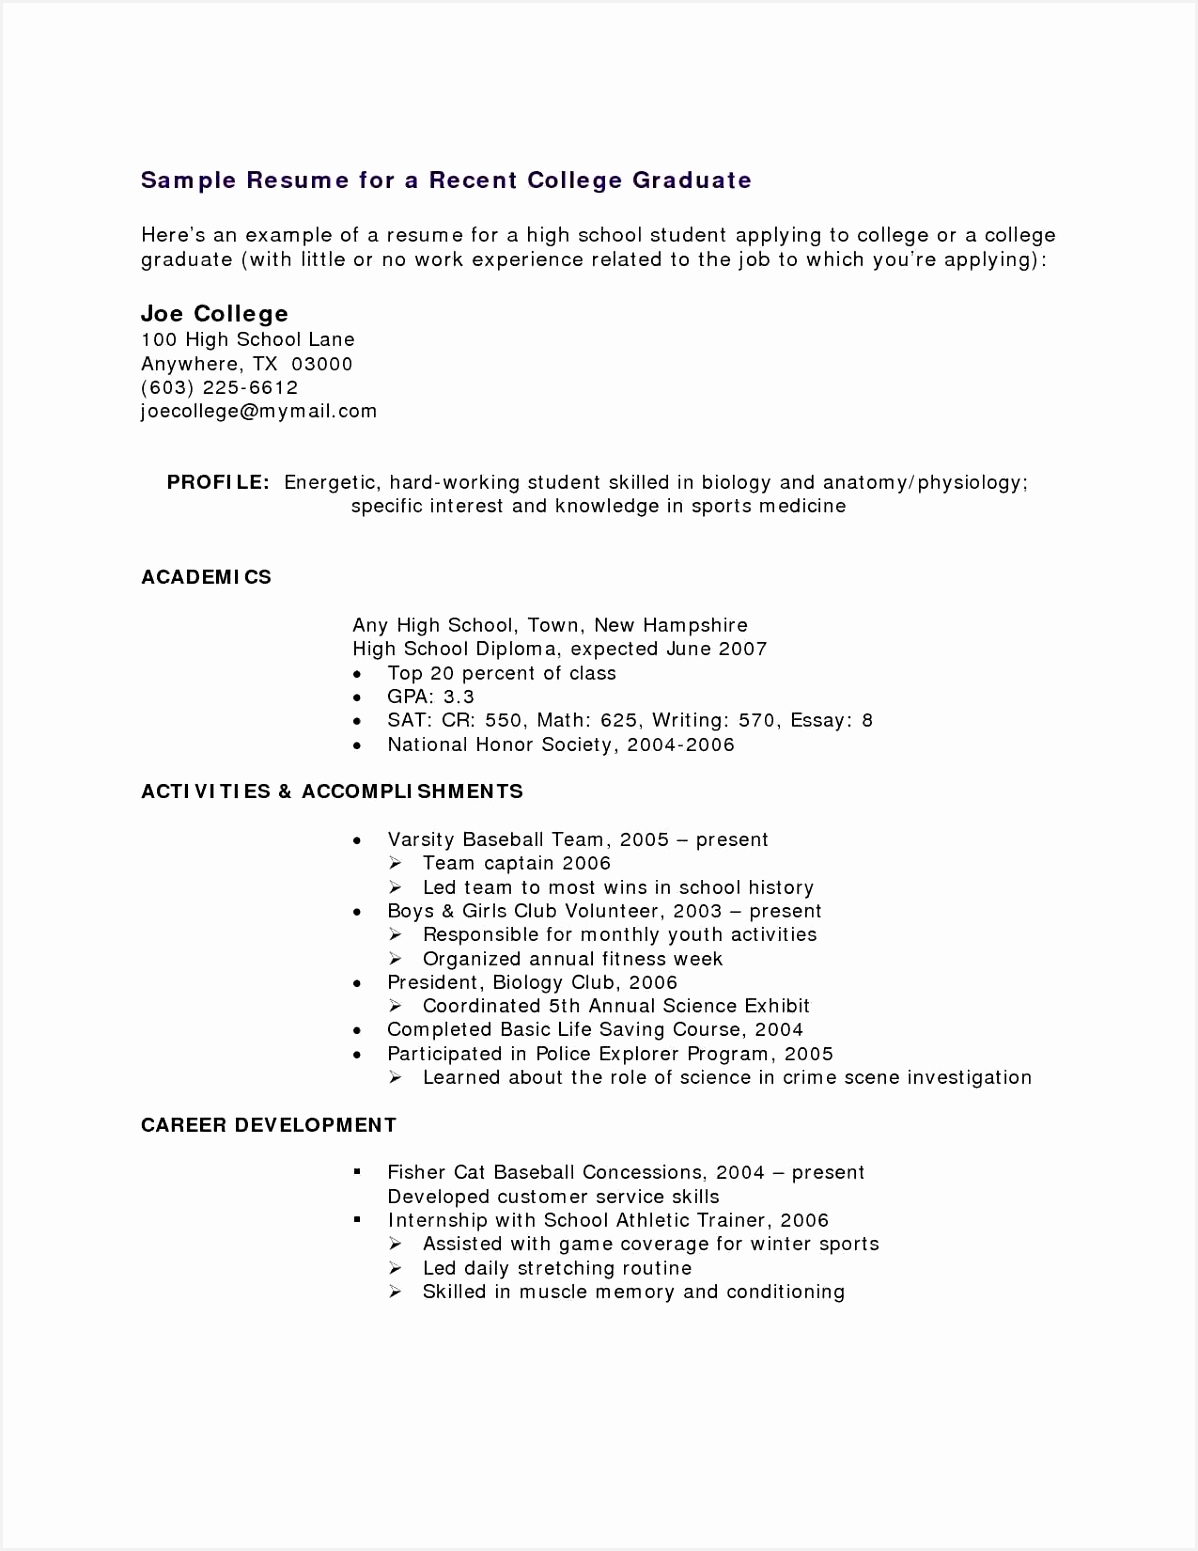 Resume Samples for Graduate School Gchle Inspirational Student Affairs Resume Samples Best Resume Examples for Jobs with Of Resume Samples for Graduate School Gwkyf Lovely Cover Letter for Job Example Luxury Cover Letter Layout – Cover